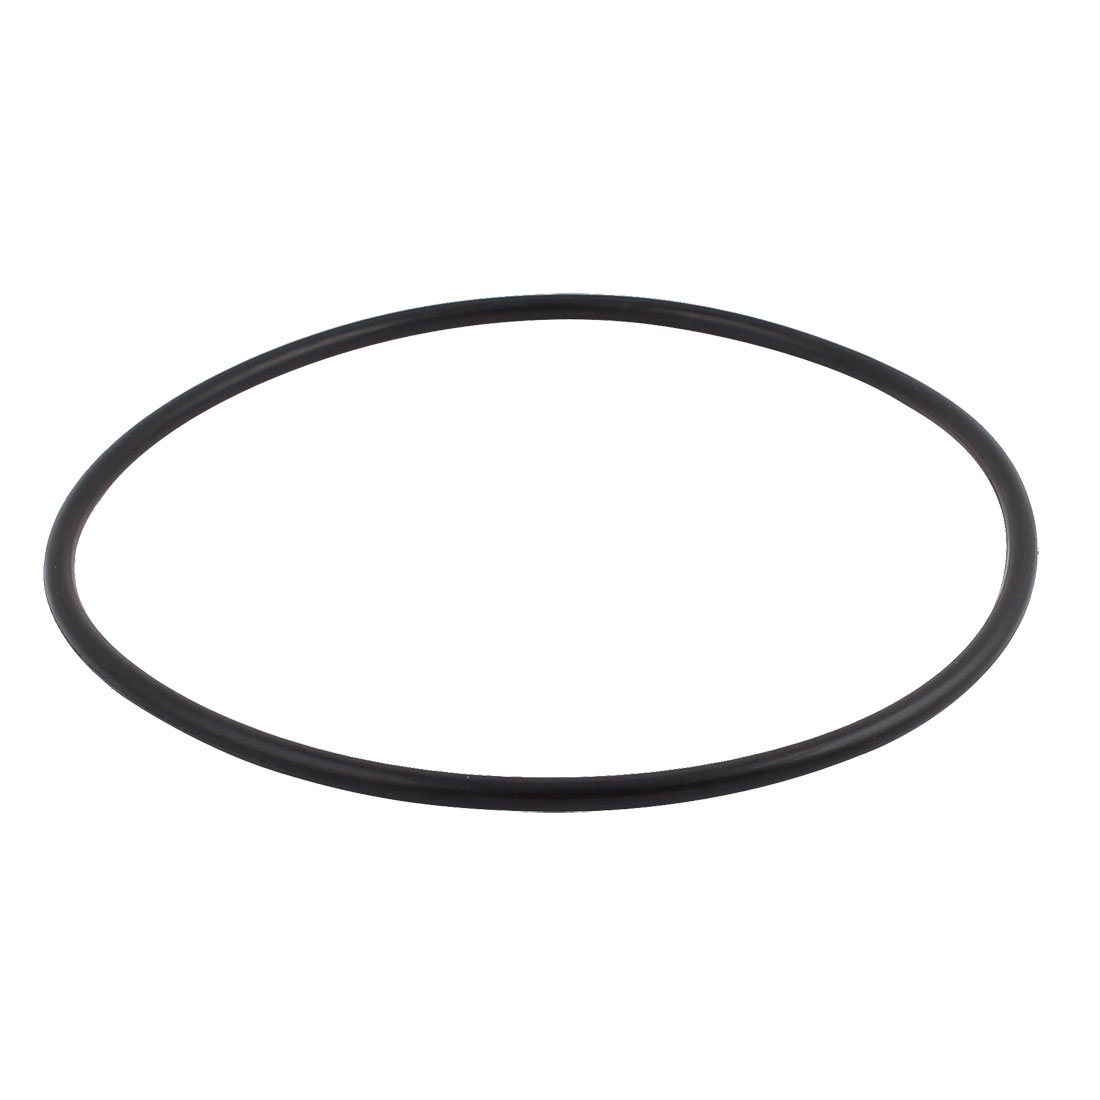 Black Universal O-Ring 260mm x 8.6mm BUNA-N Material Oil Seal Washers Grommets